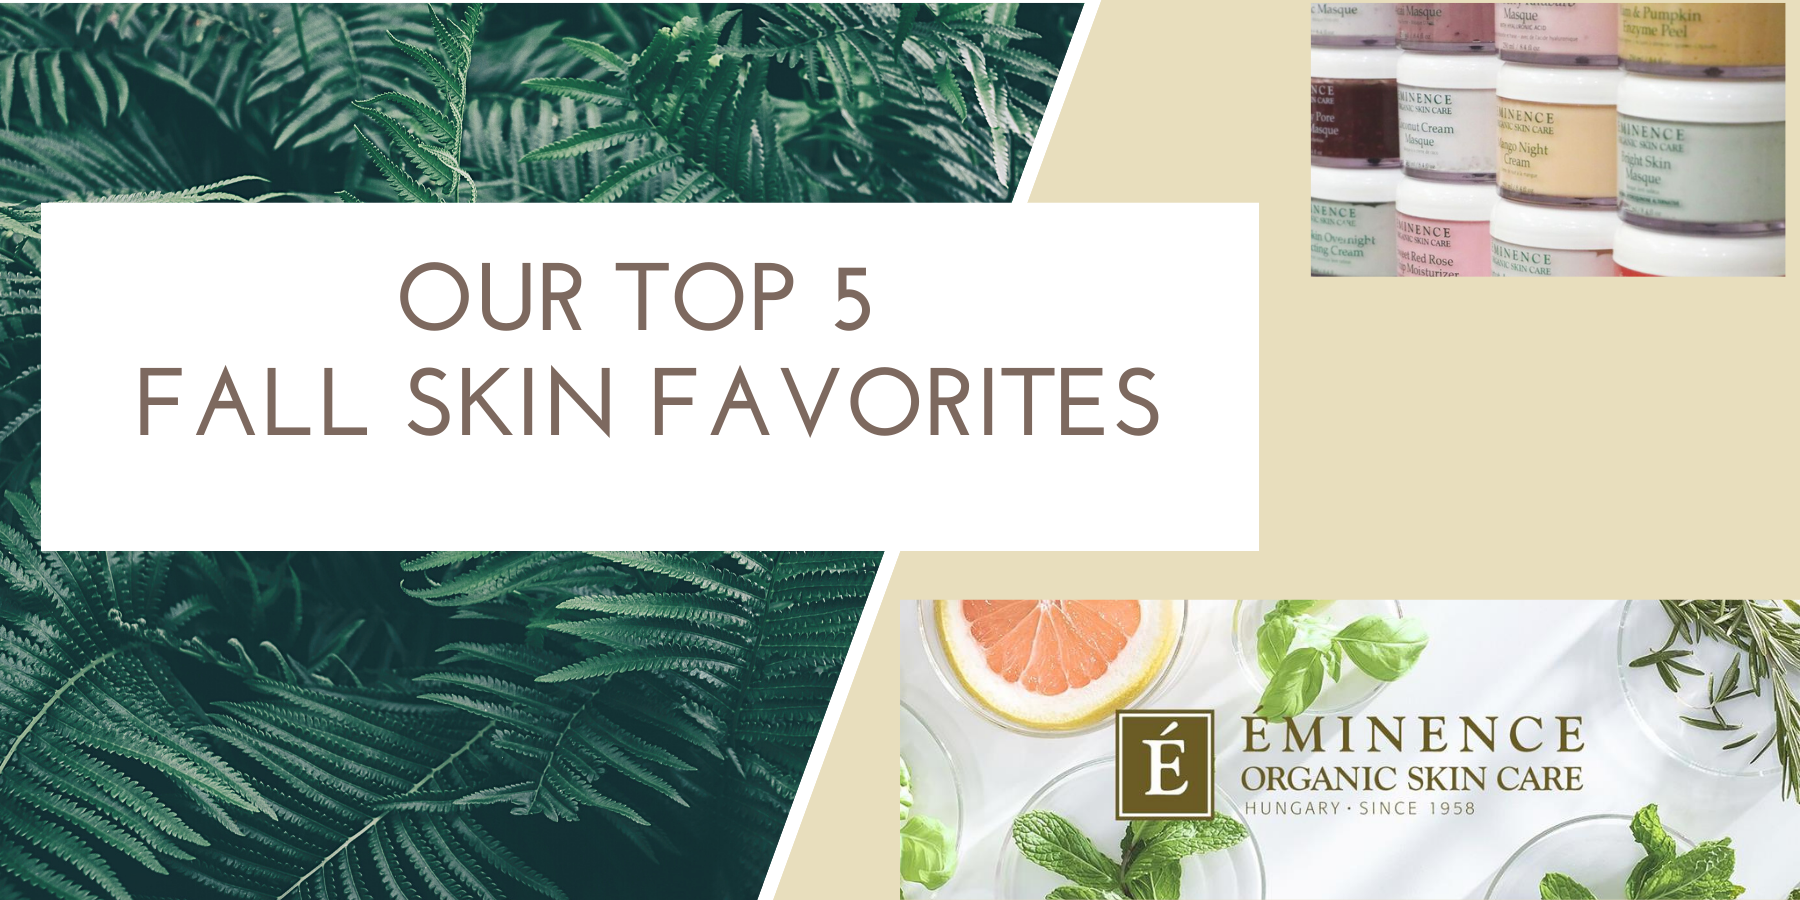 Our Top 5 Fall Skin Favorites by Eminence Organics